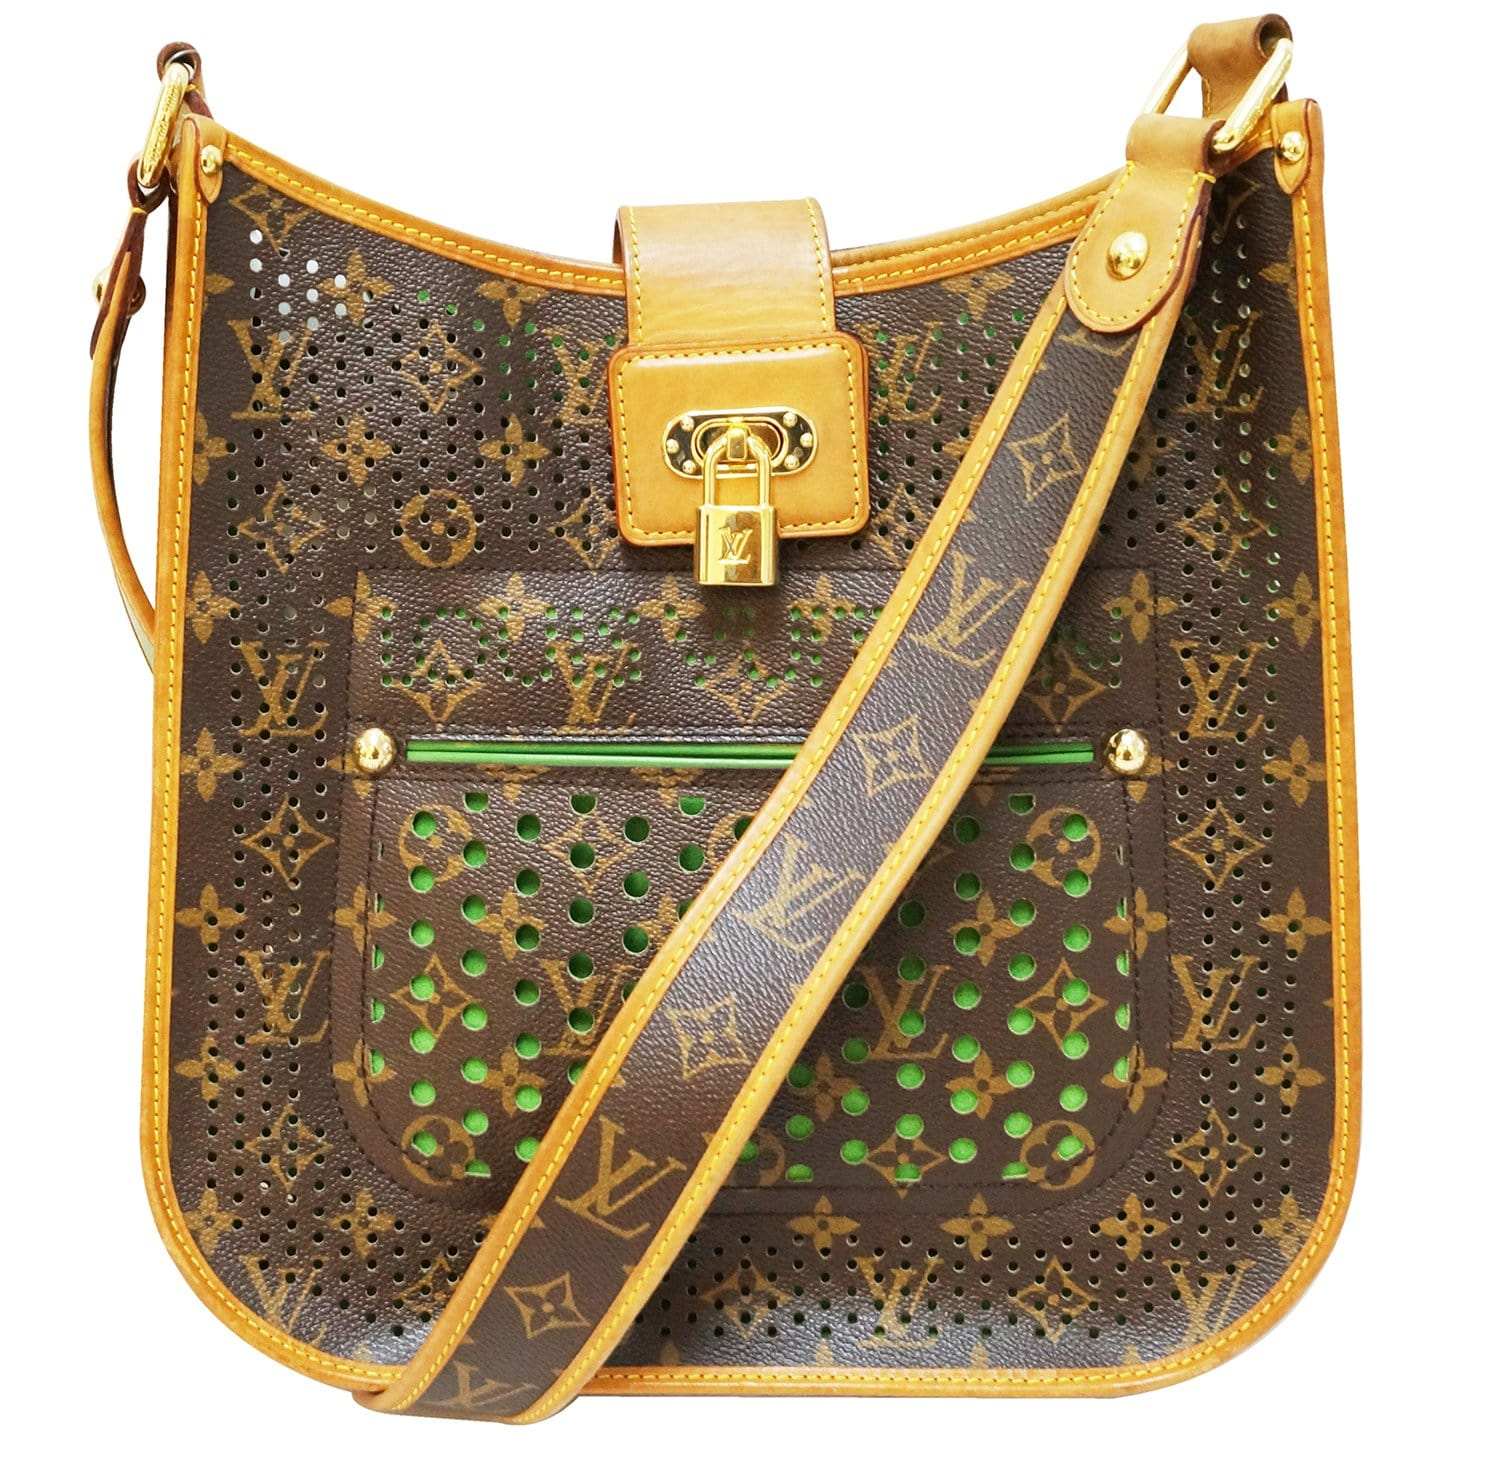 d2bf54a19ed3 Authentic LOUIS VUITTON Monogram Perforated Musette Green Bag Limited